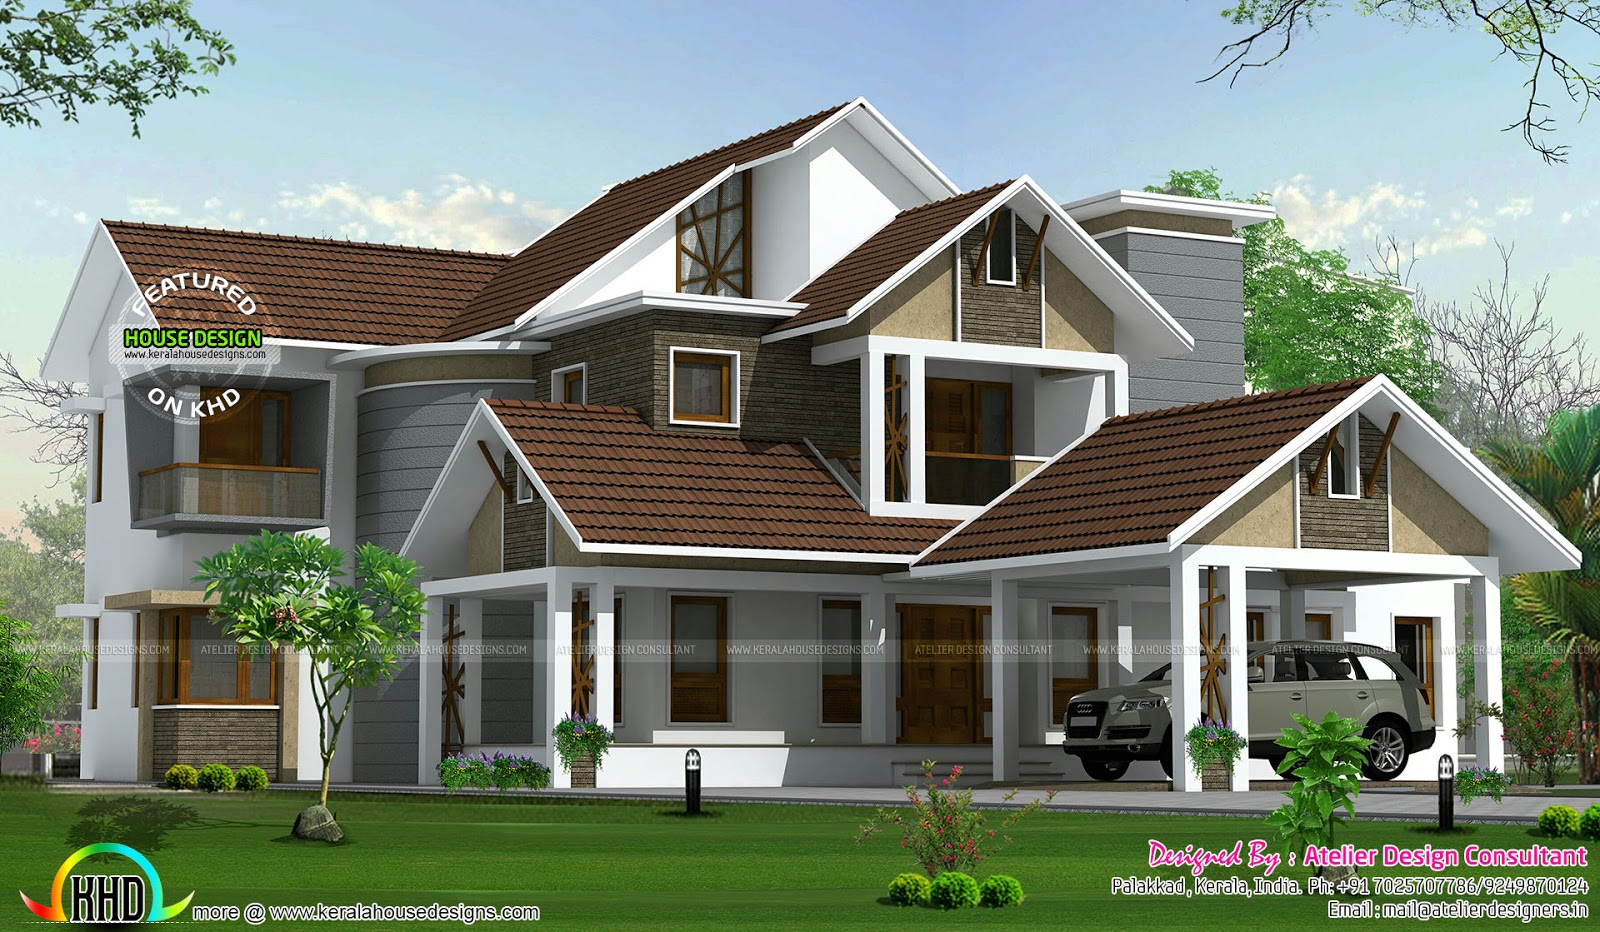 Beautiful slope roof home kerala home design and floor plans for Slope home design